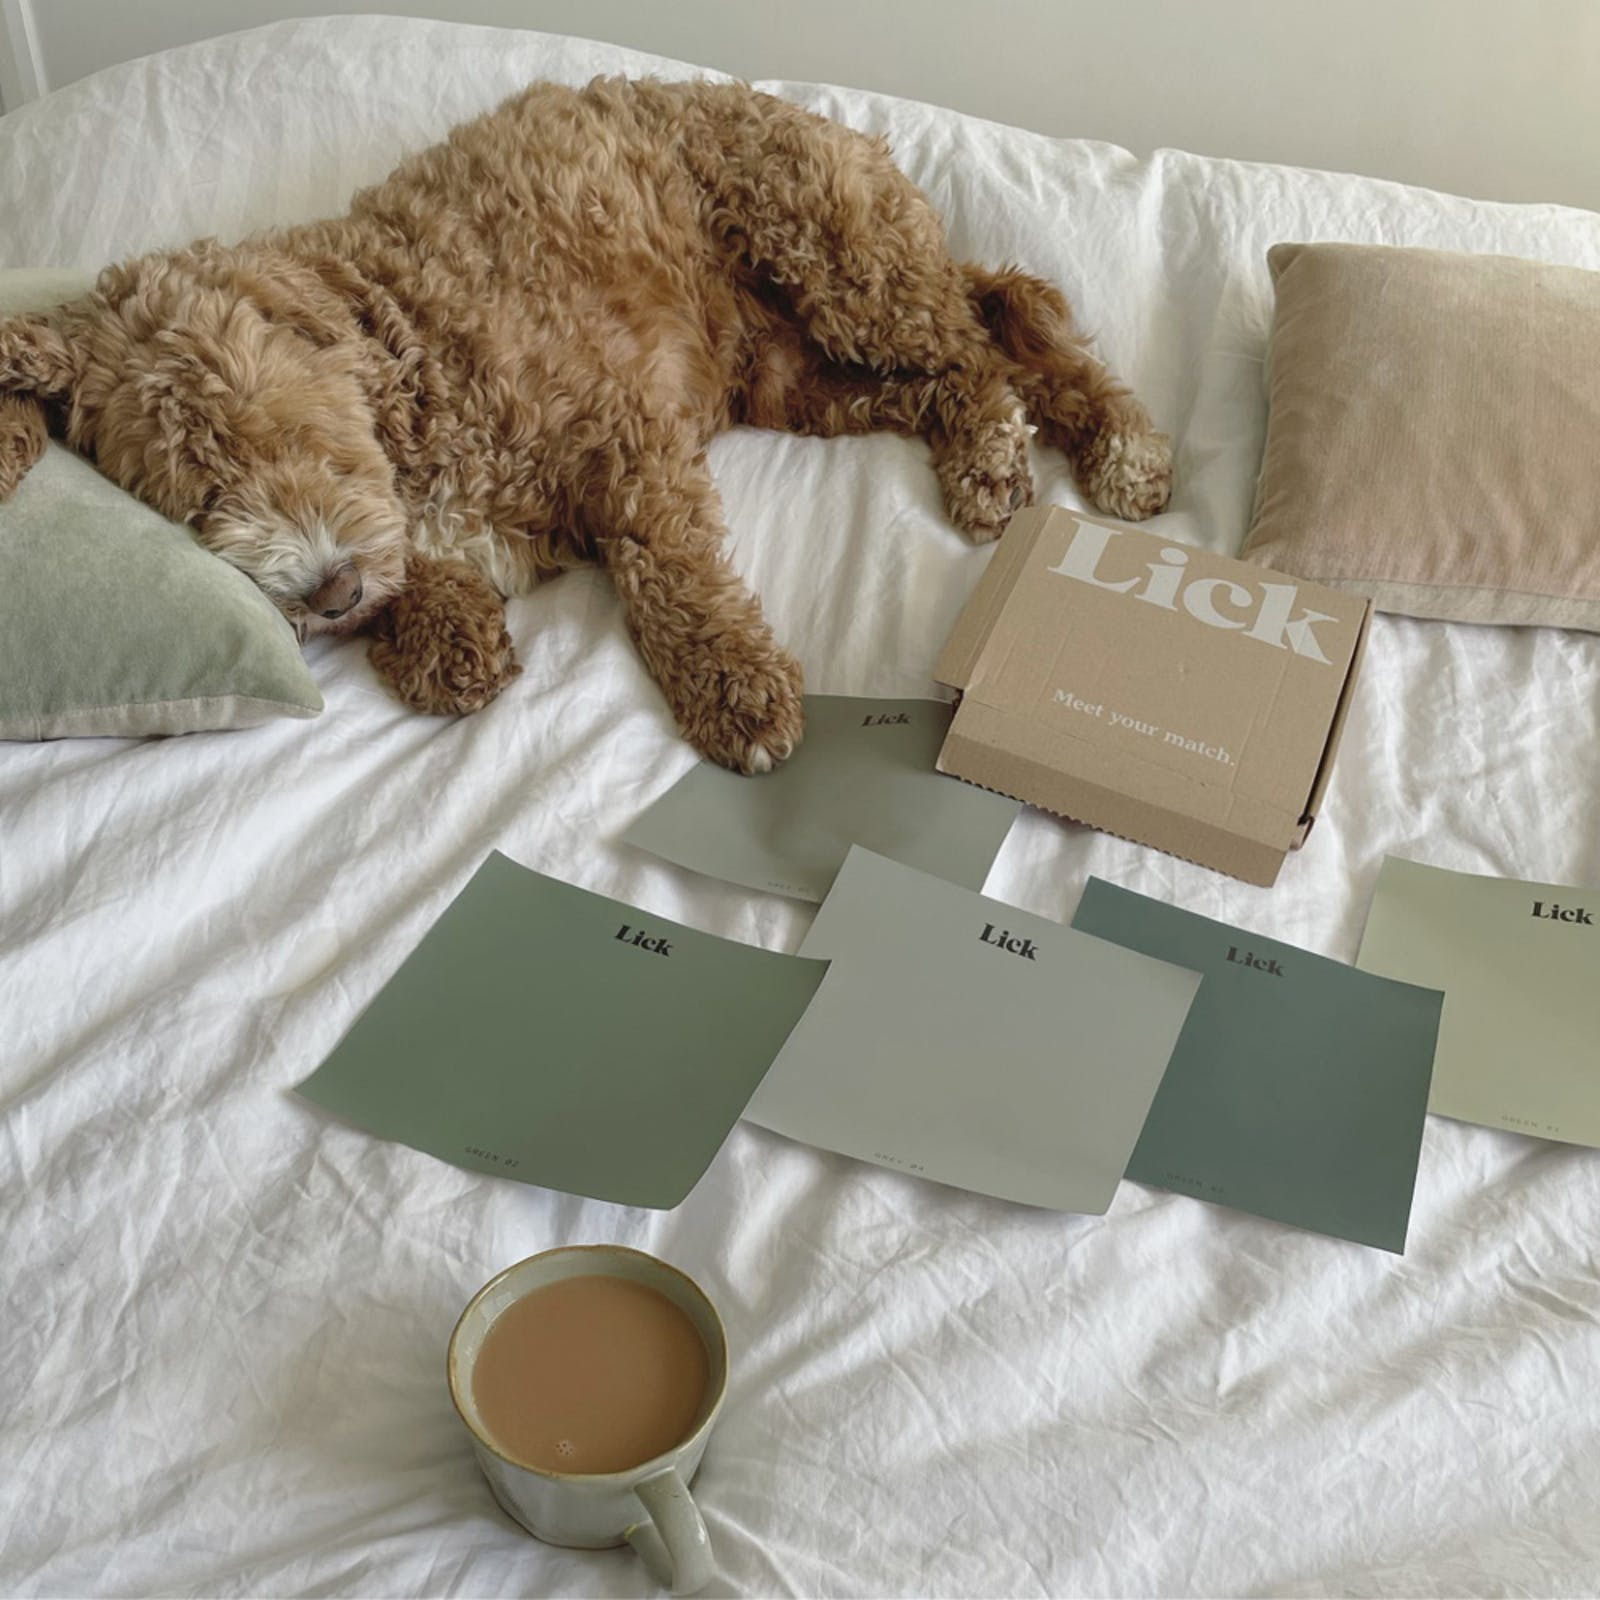 Lick paint samples laid out on bed with dog sleeping next to them